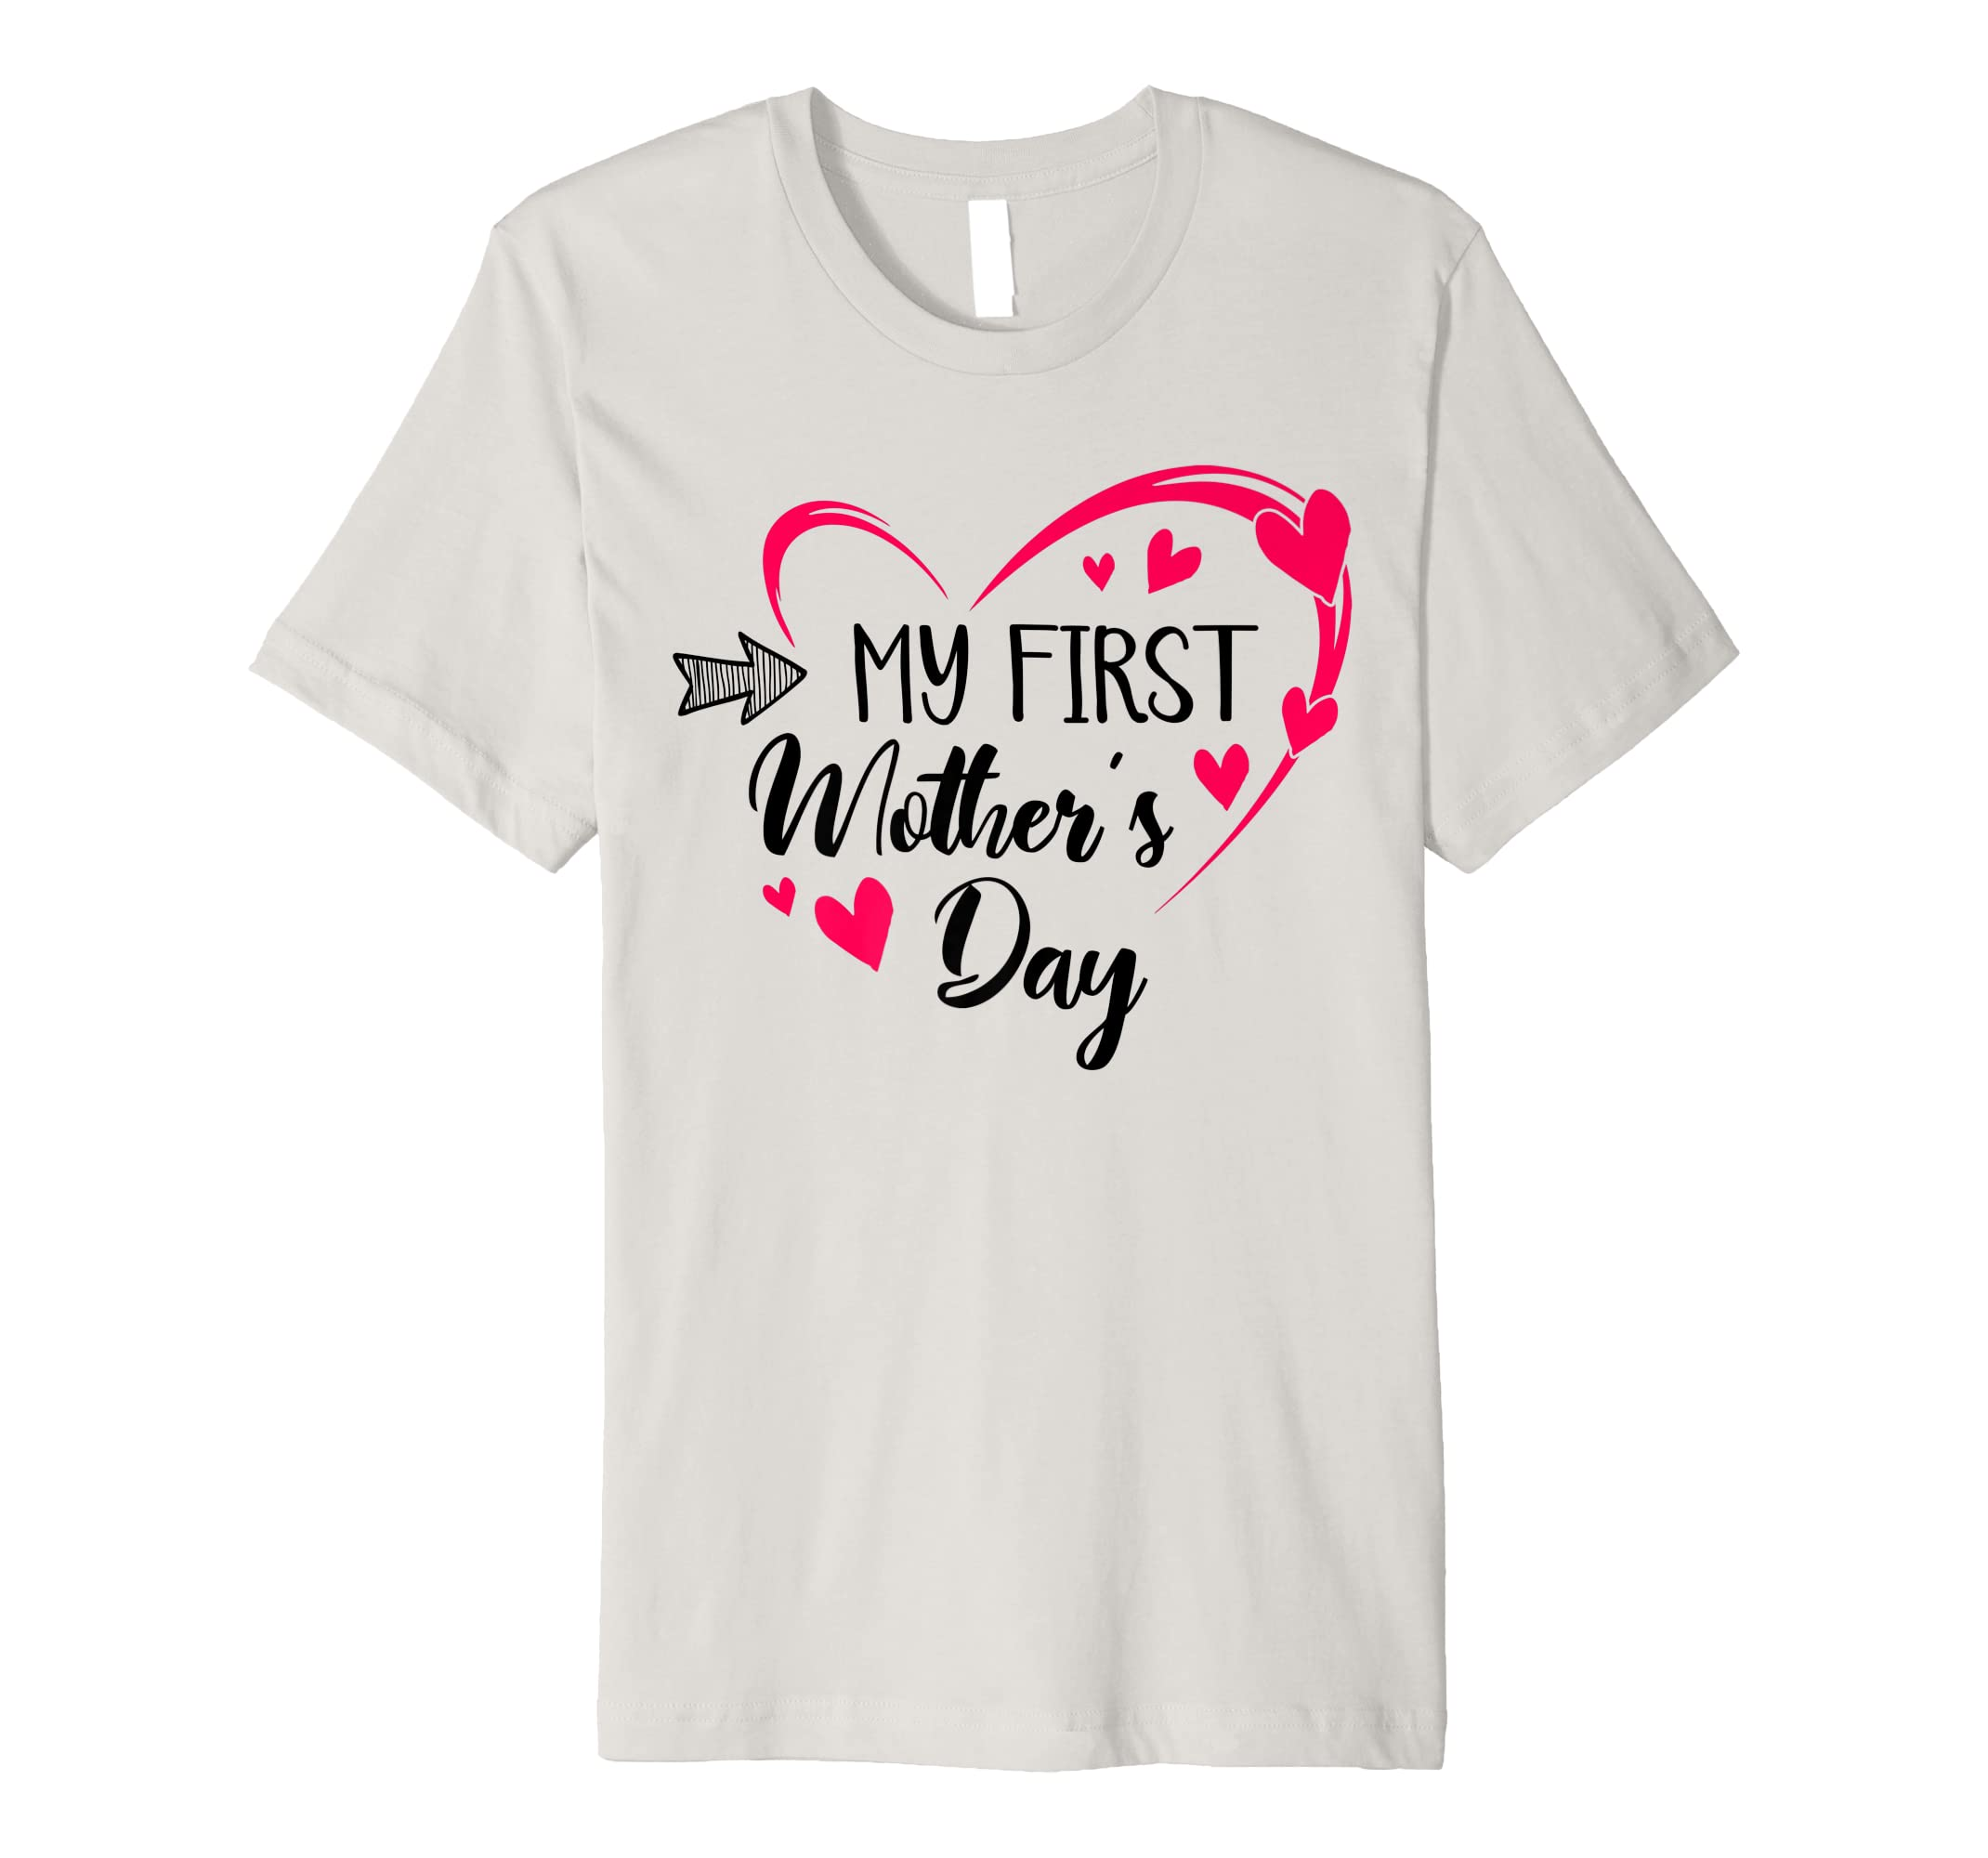 83ef544284970 Amazon.com: My First Mother's Day Heart Pregnancy Announcement Premium T- Shirt: Clothing